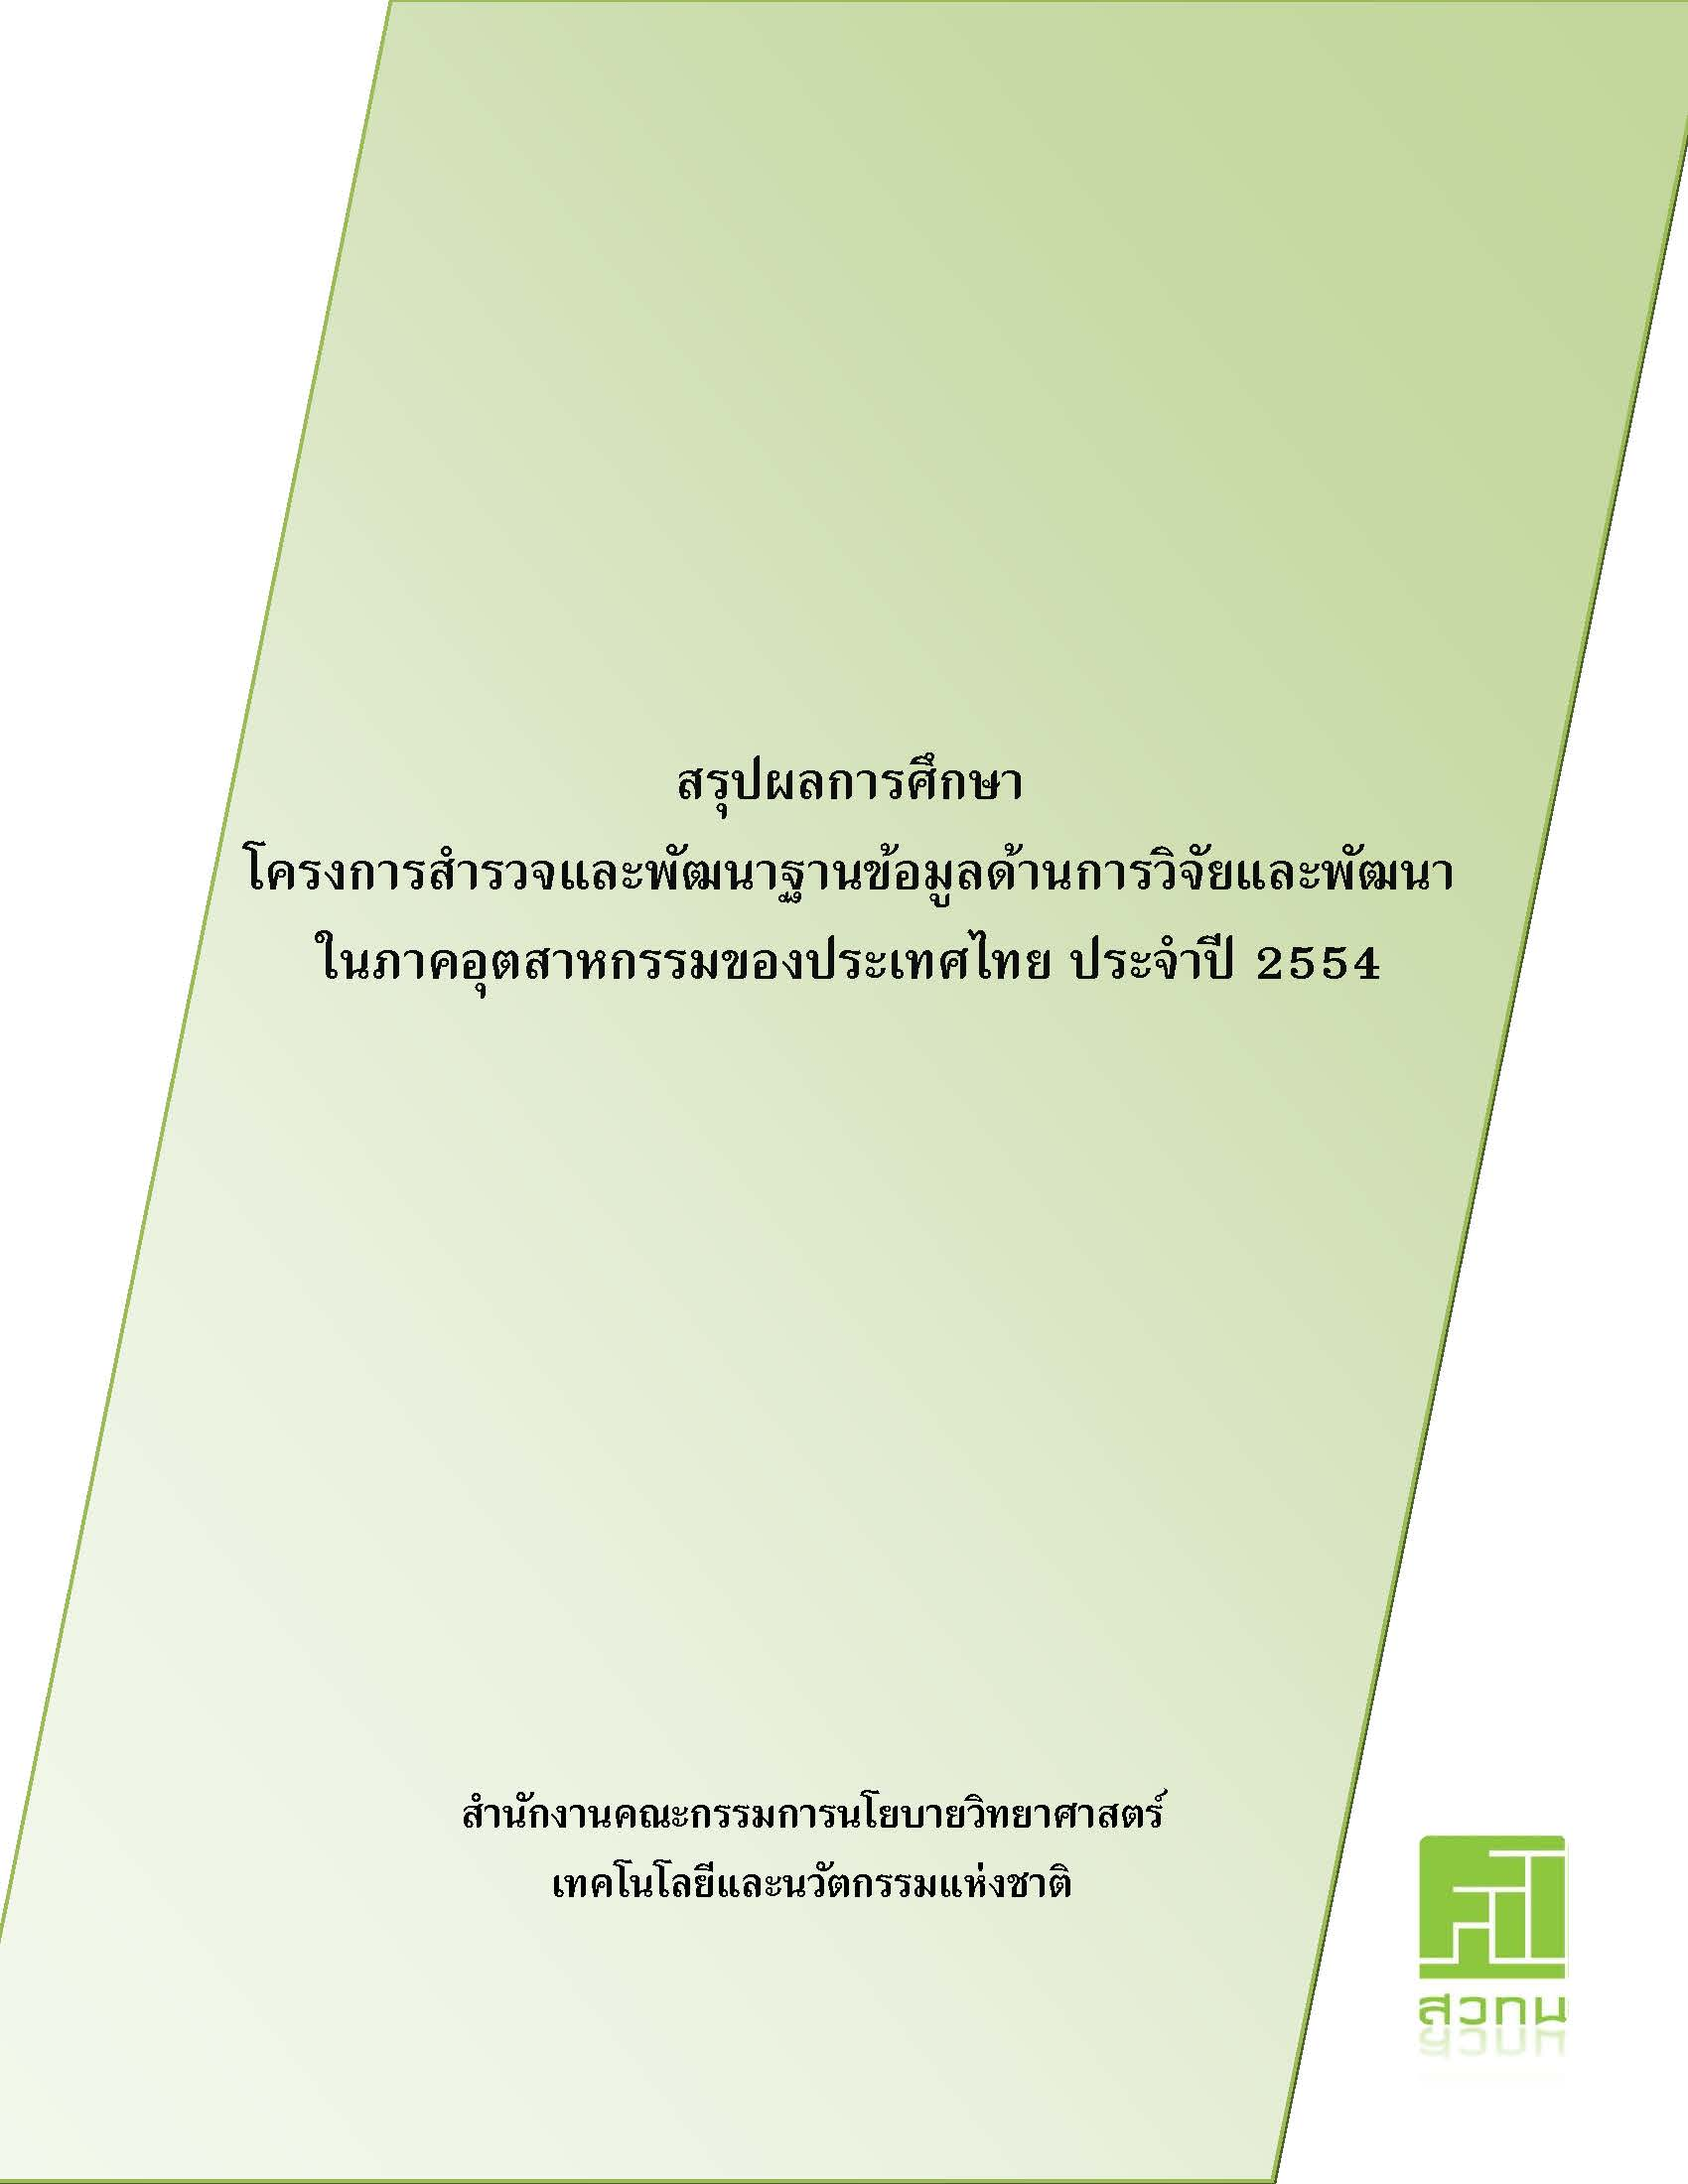 Survey of Research and Development. 2011 (2554)